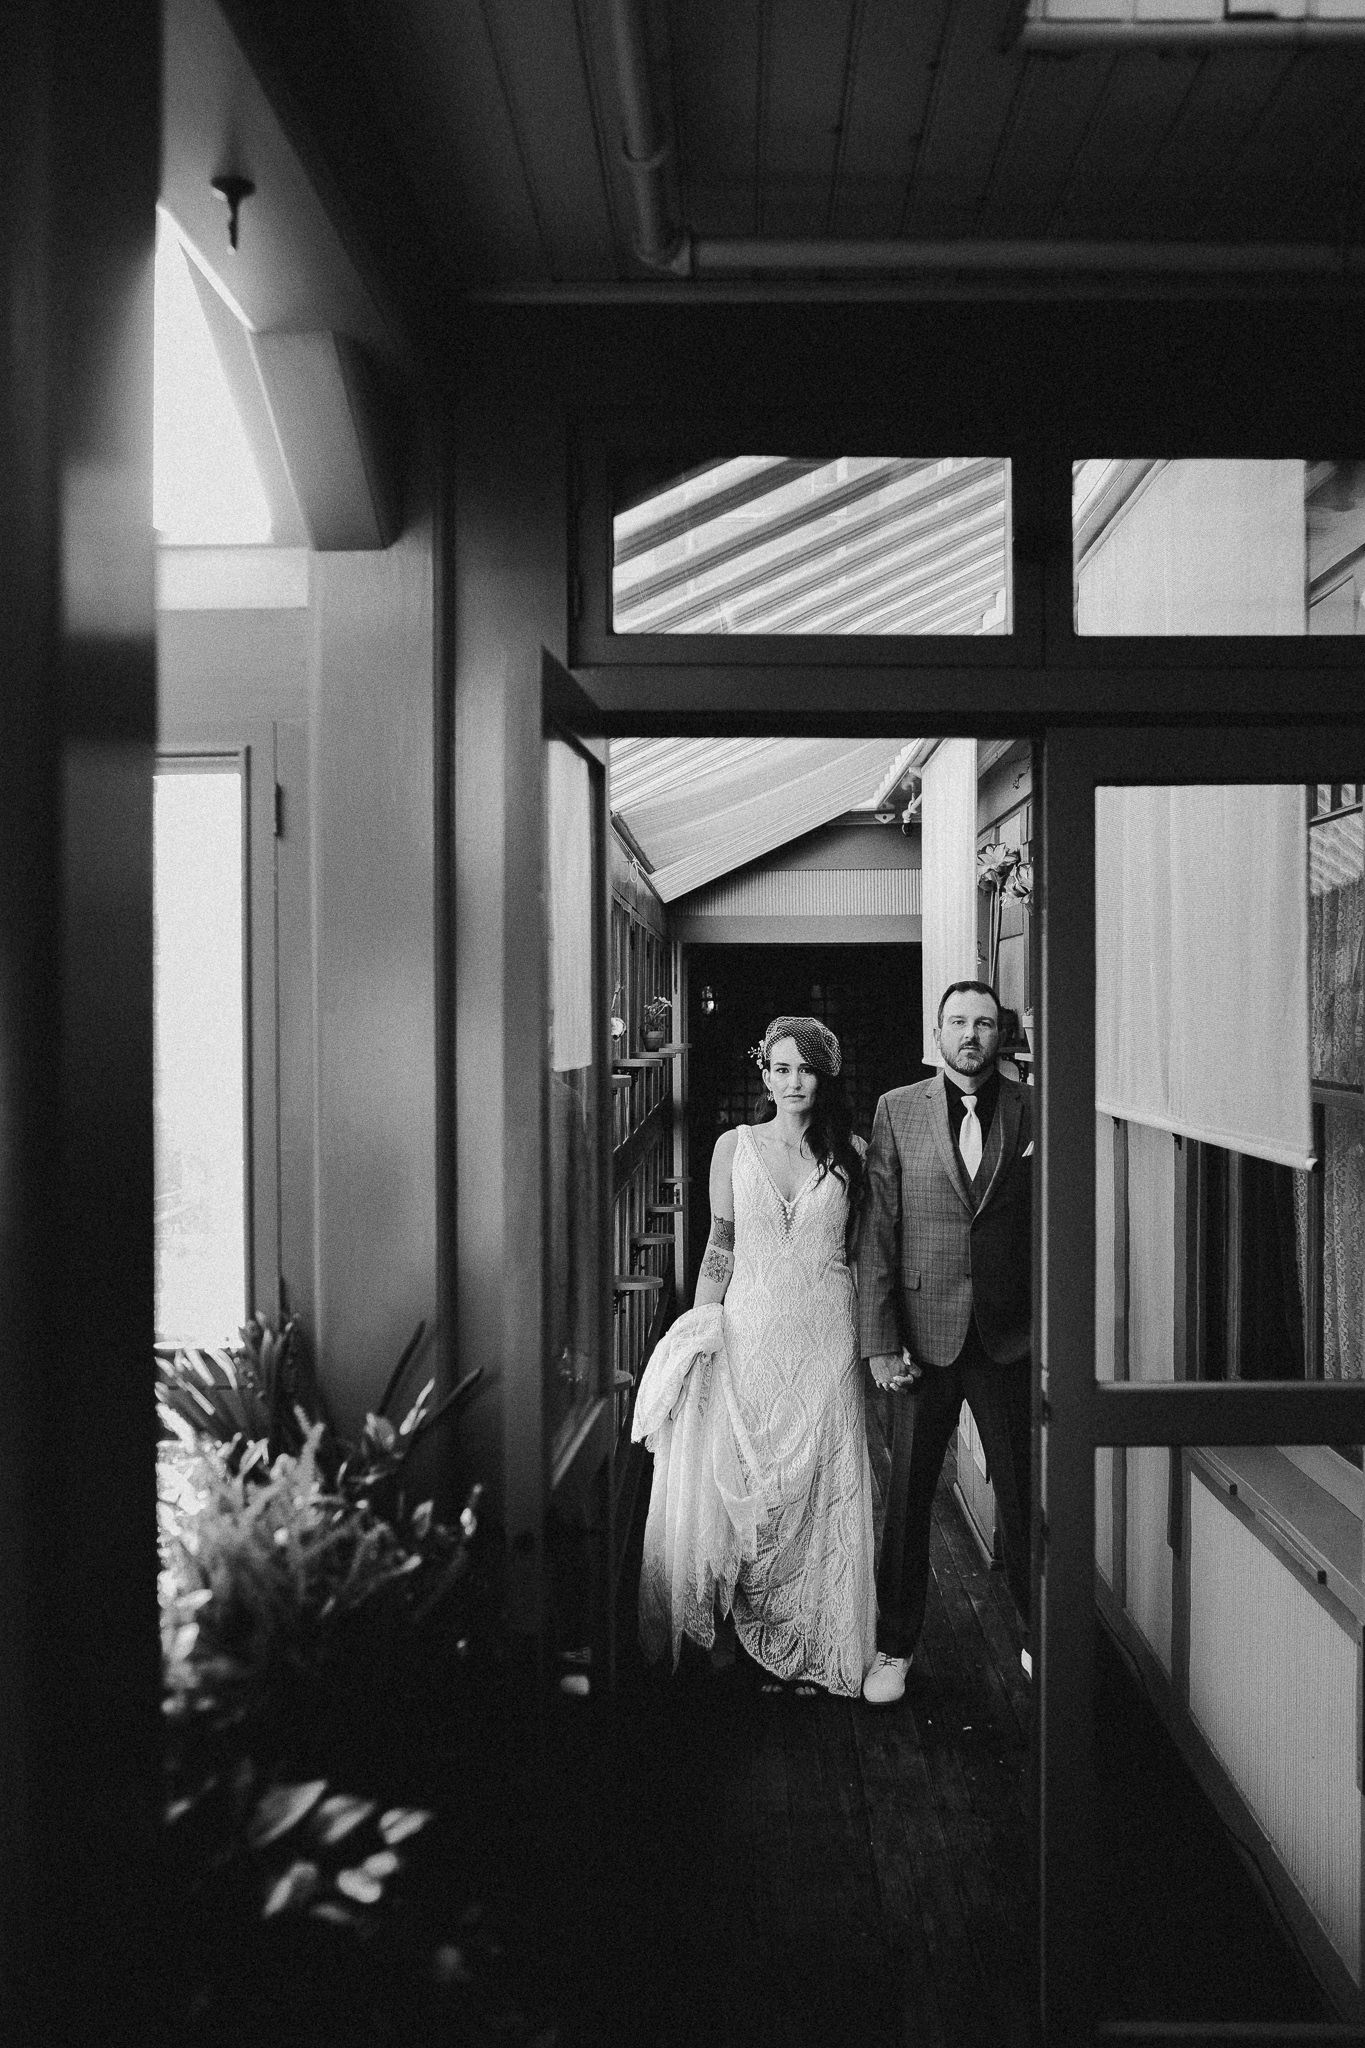 Archer Inspired Photography Sara and Aaron Winchester Mystery House NorCal San Jose California Wedding Photographer-301.jpg